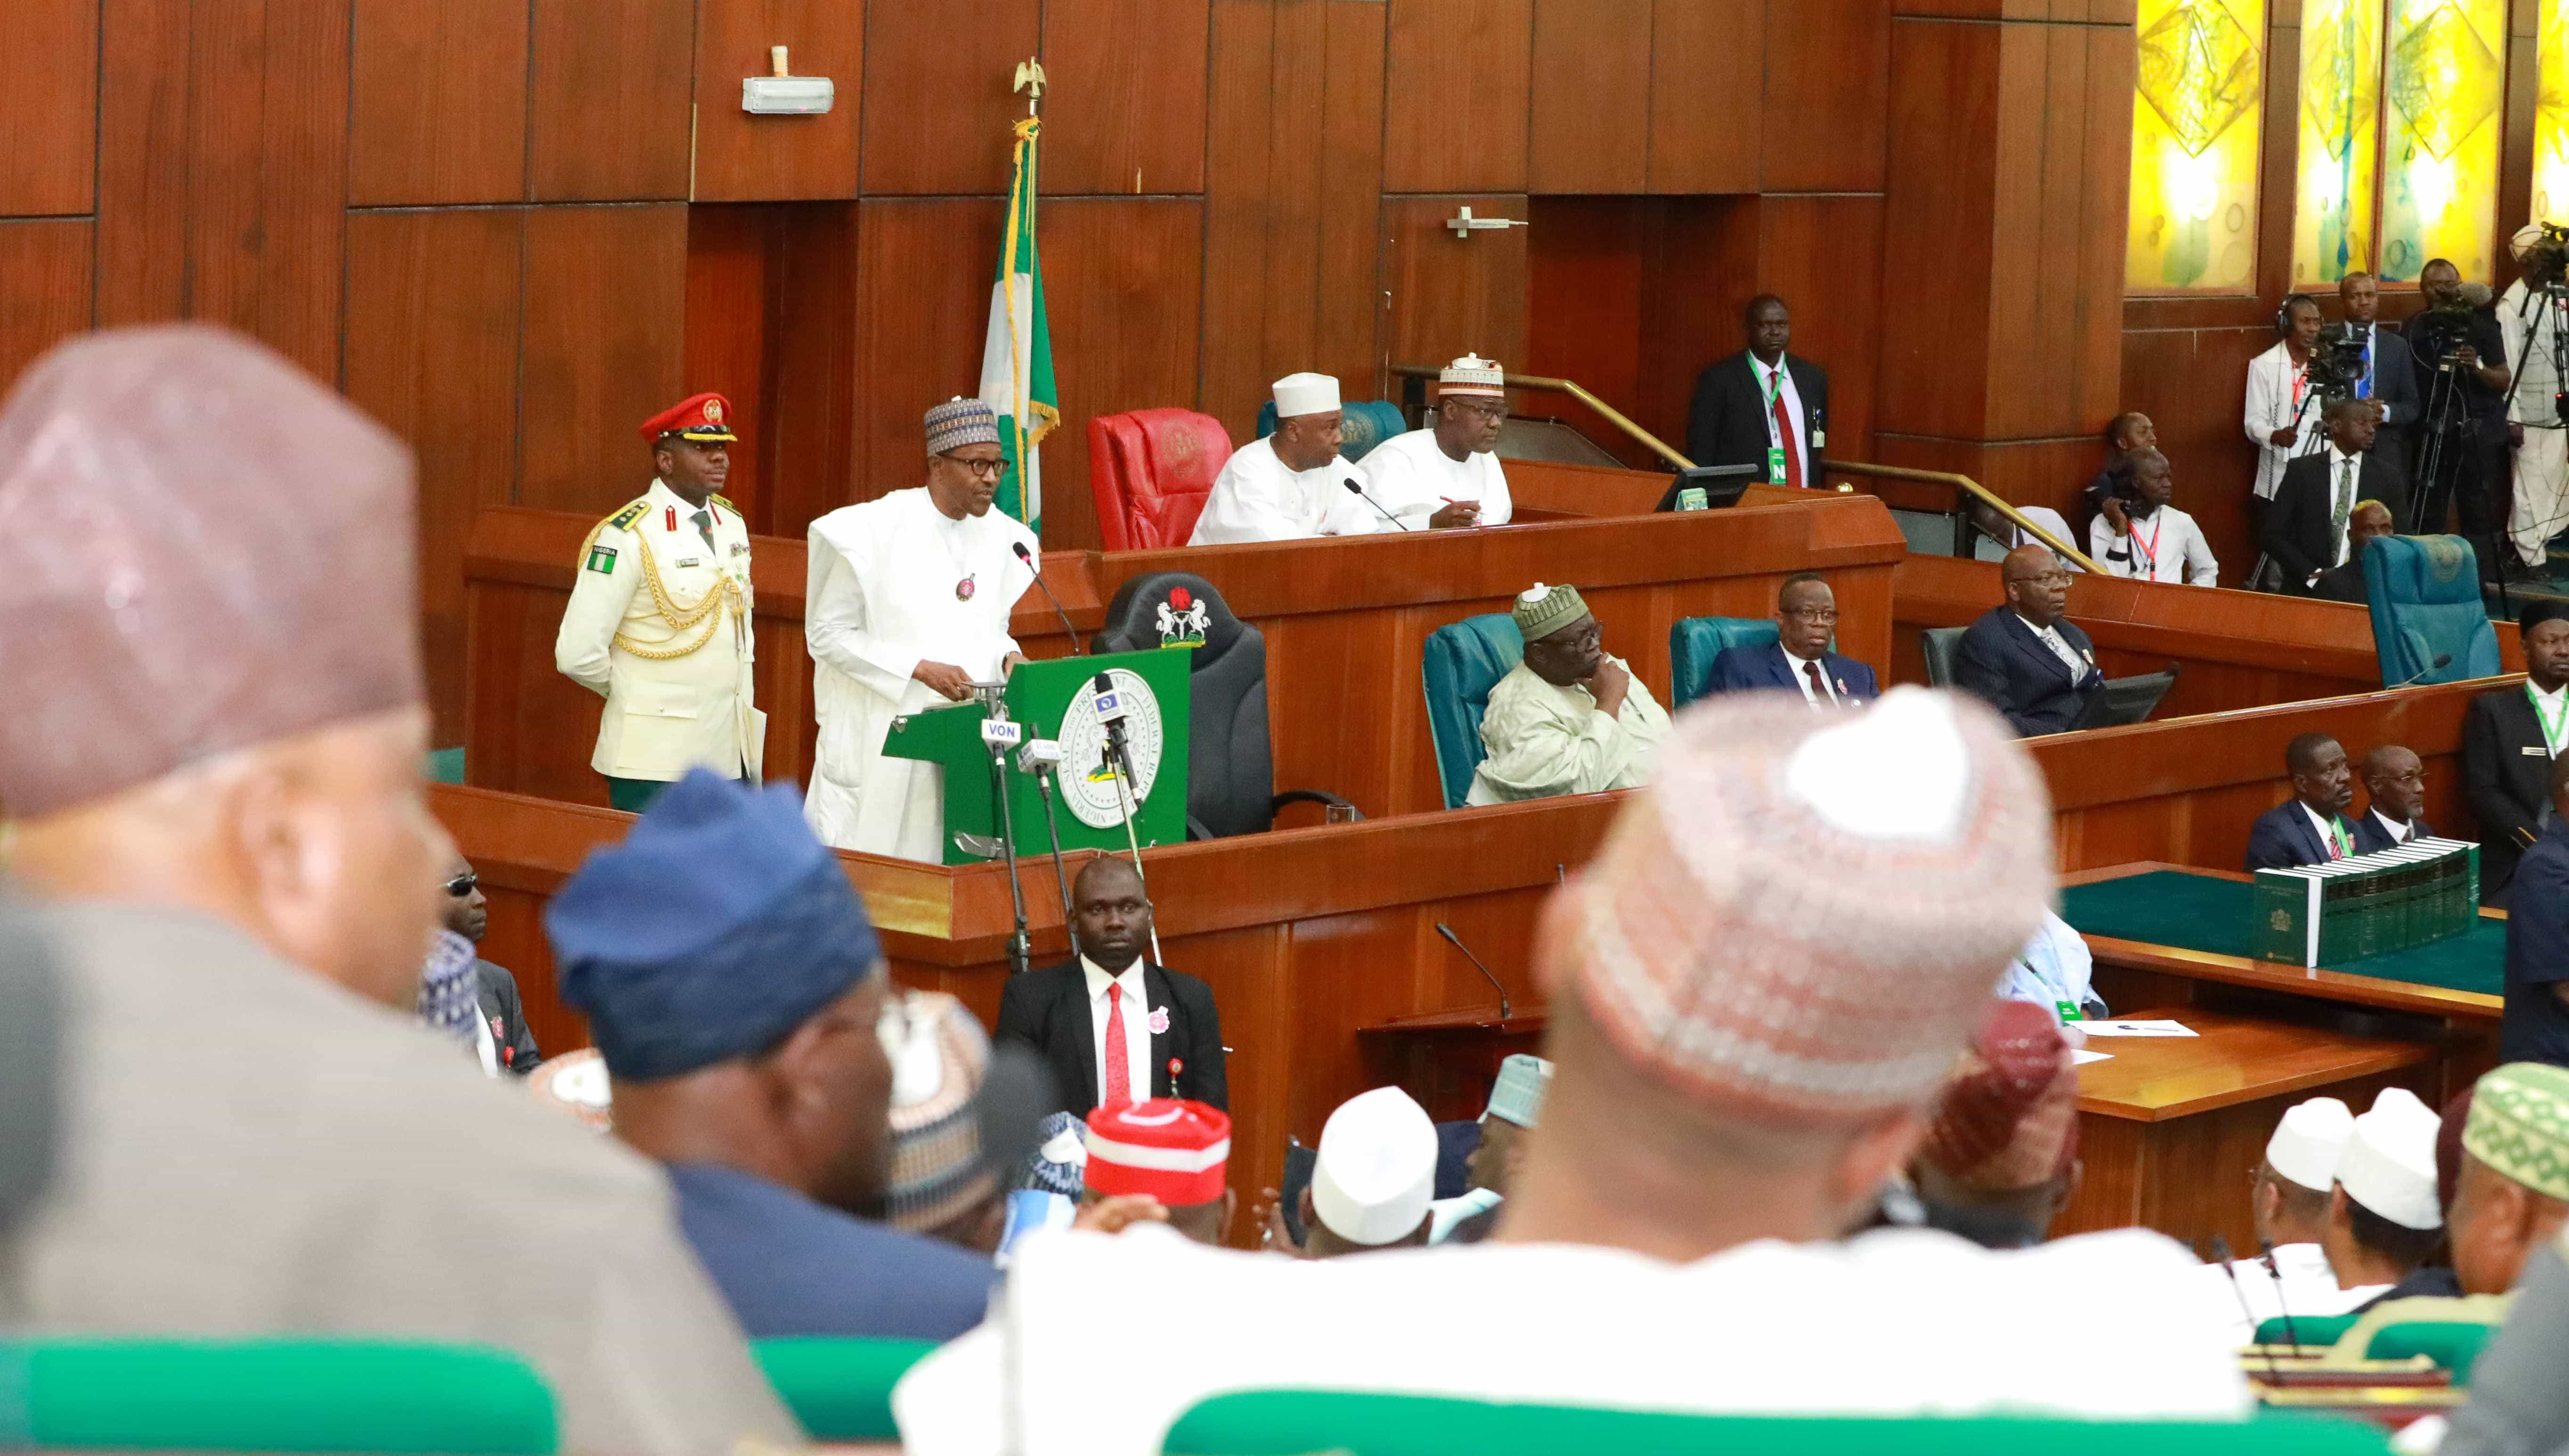 Photo of President Buhari presents the 2019 budget at the National Assembly